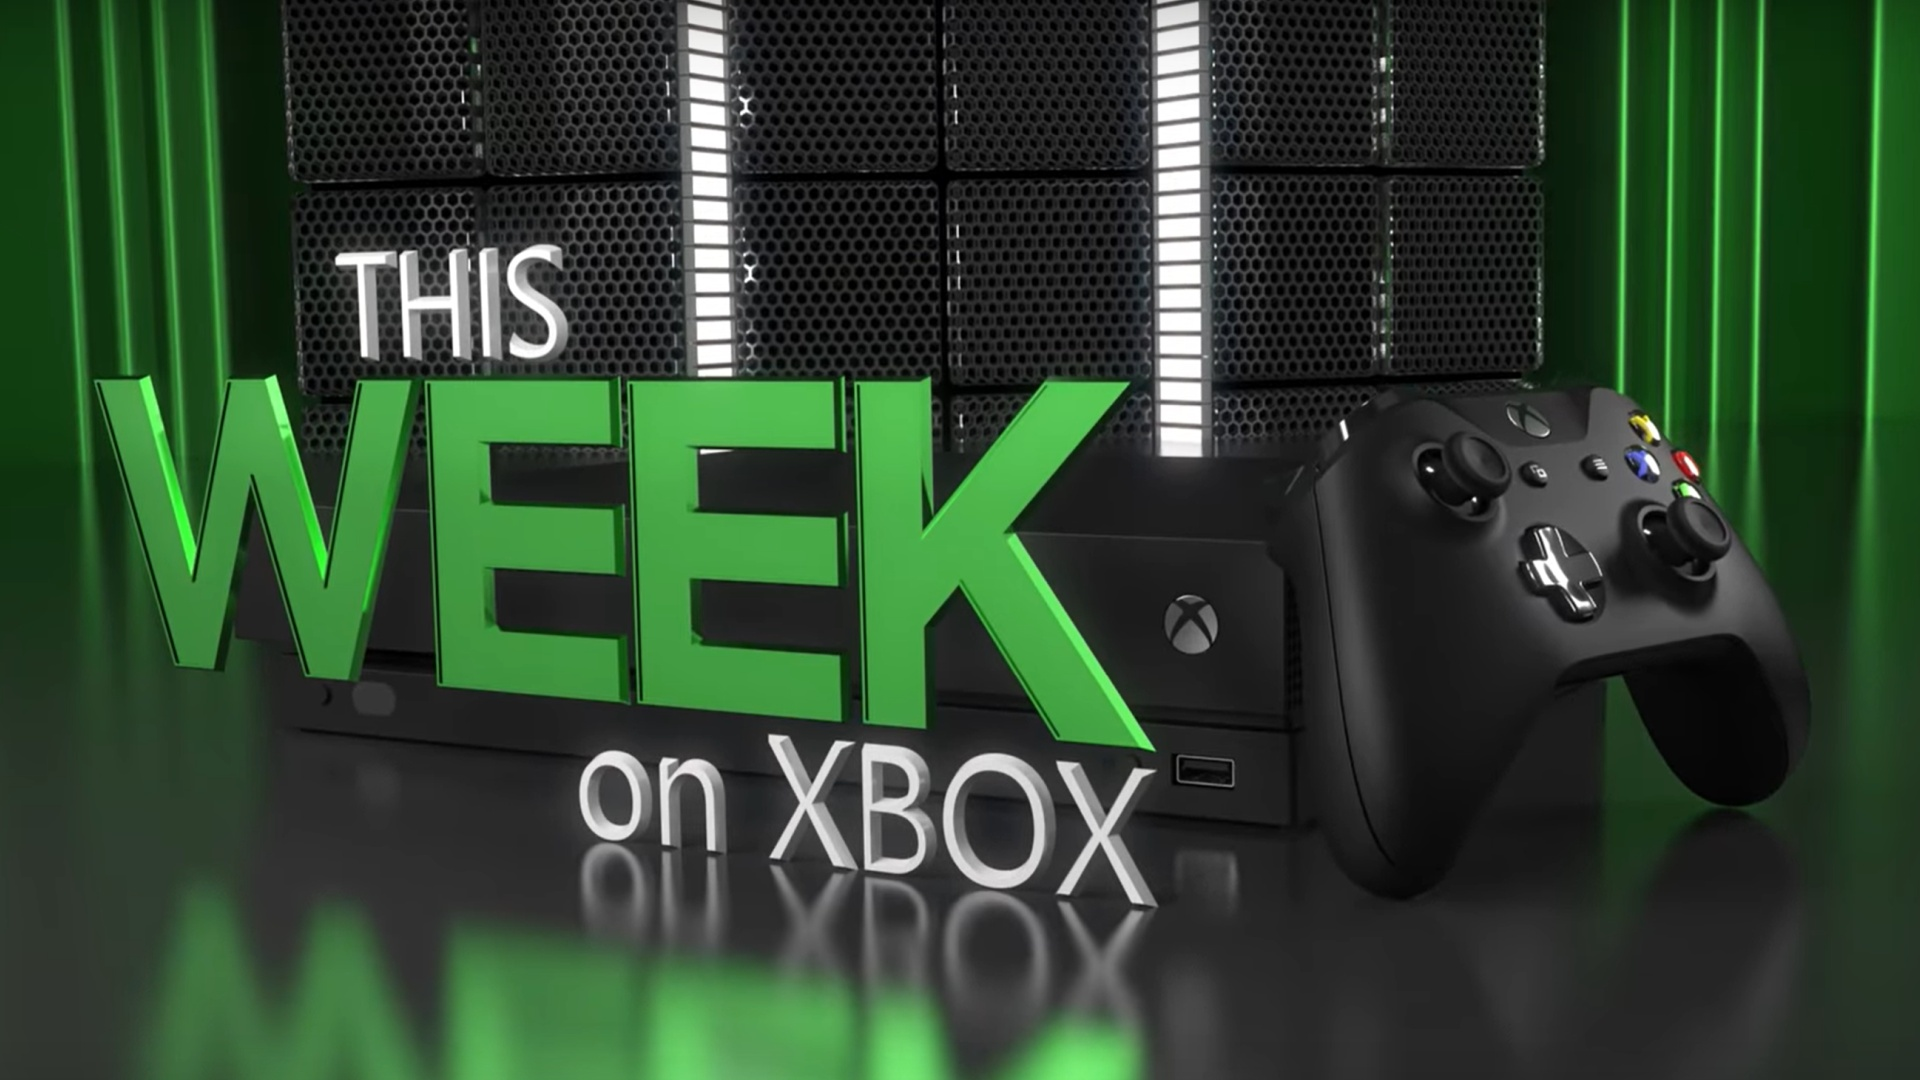 This Week on Xbox - 2020